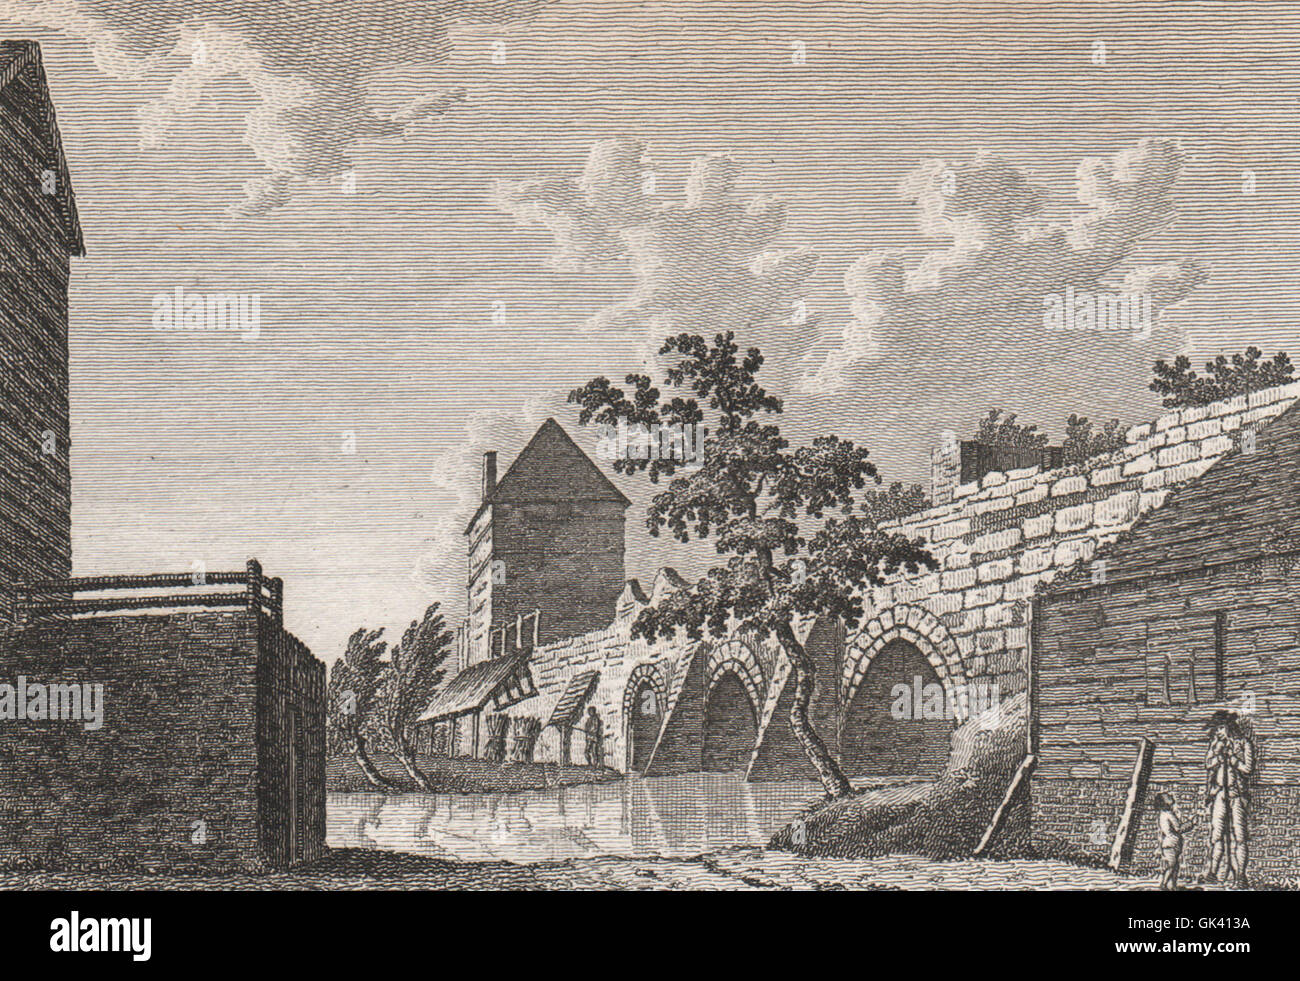 CANTERBURY. 'Arches in the town wall', demolished 1769. GOSTLING, print 1825 - Stock Image